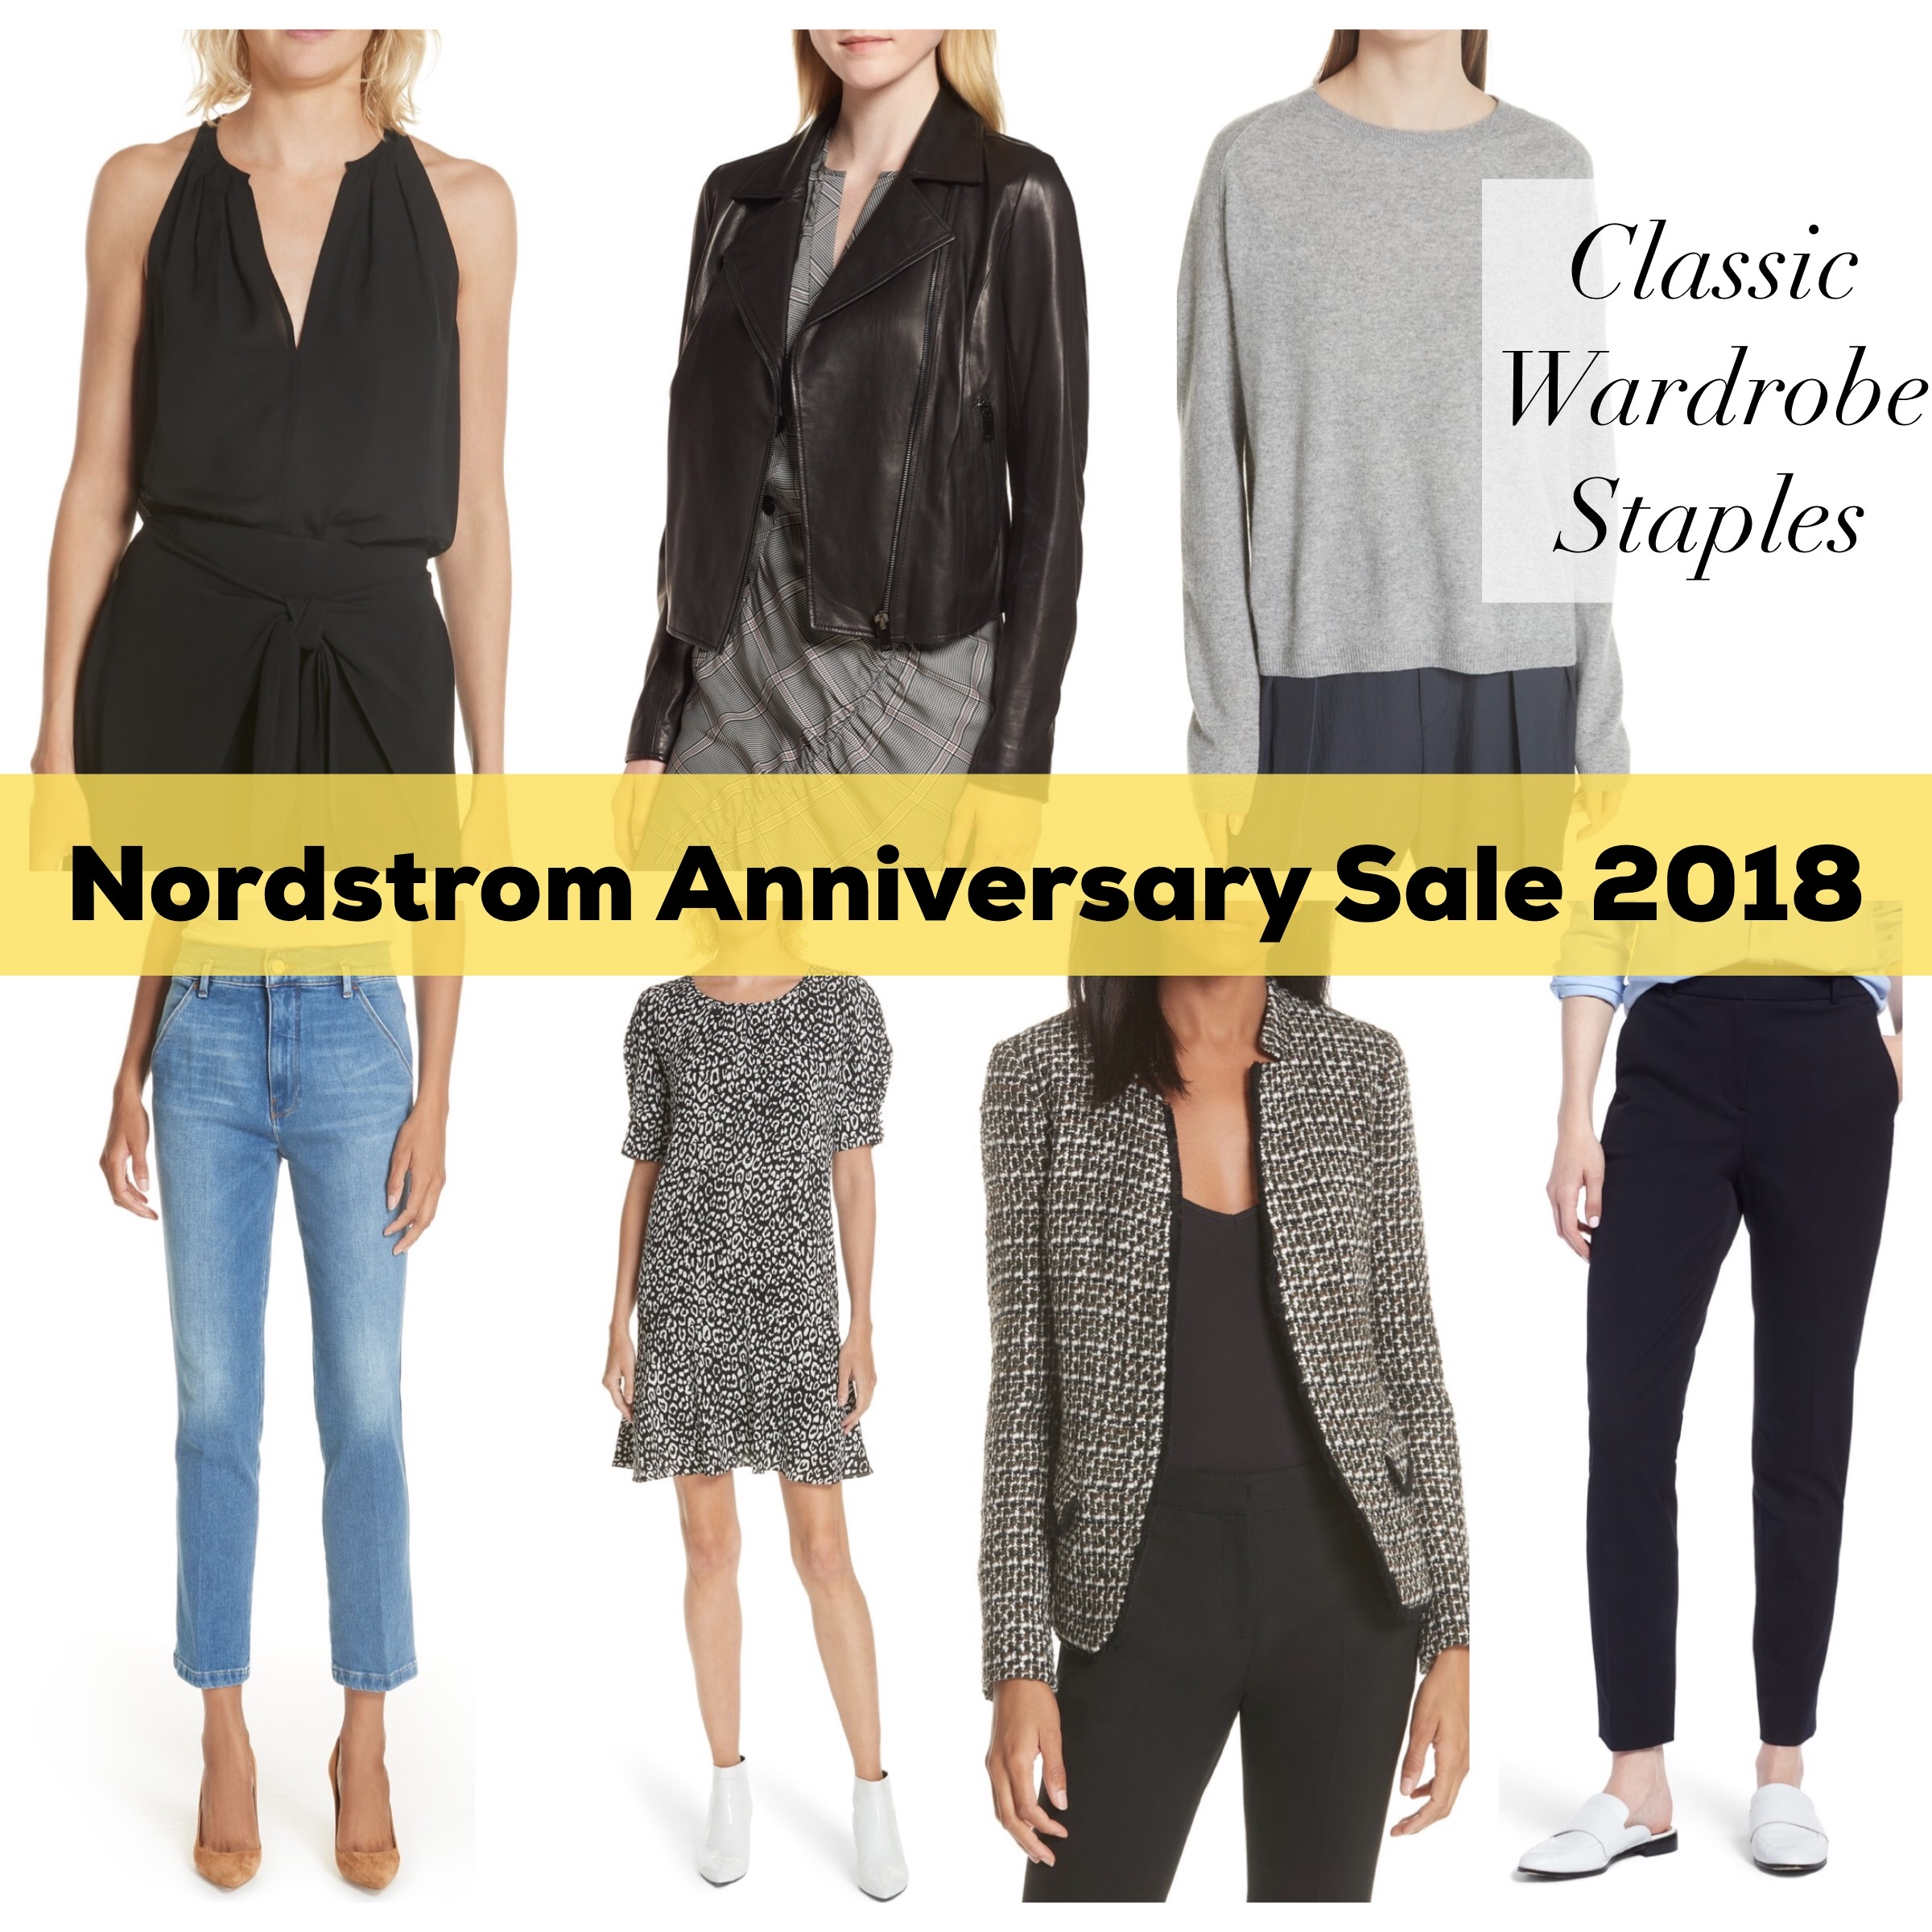 nordstrom anniversary sale 2018 wardrobe classic staples